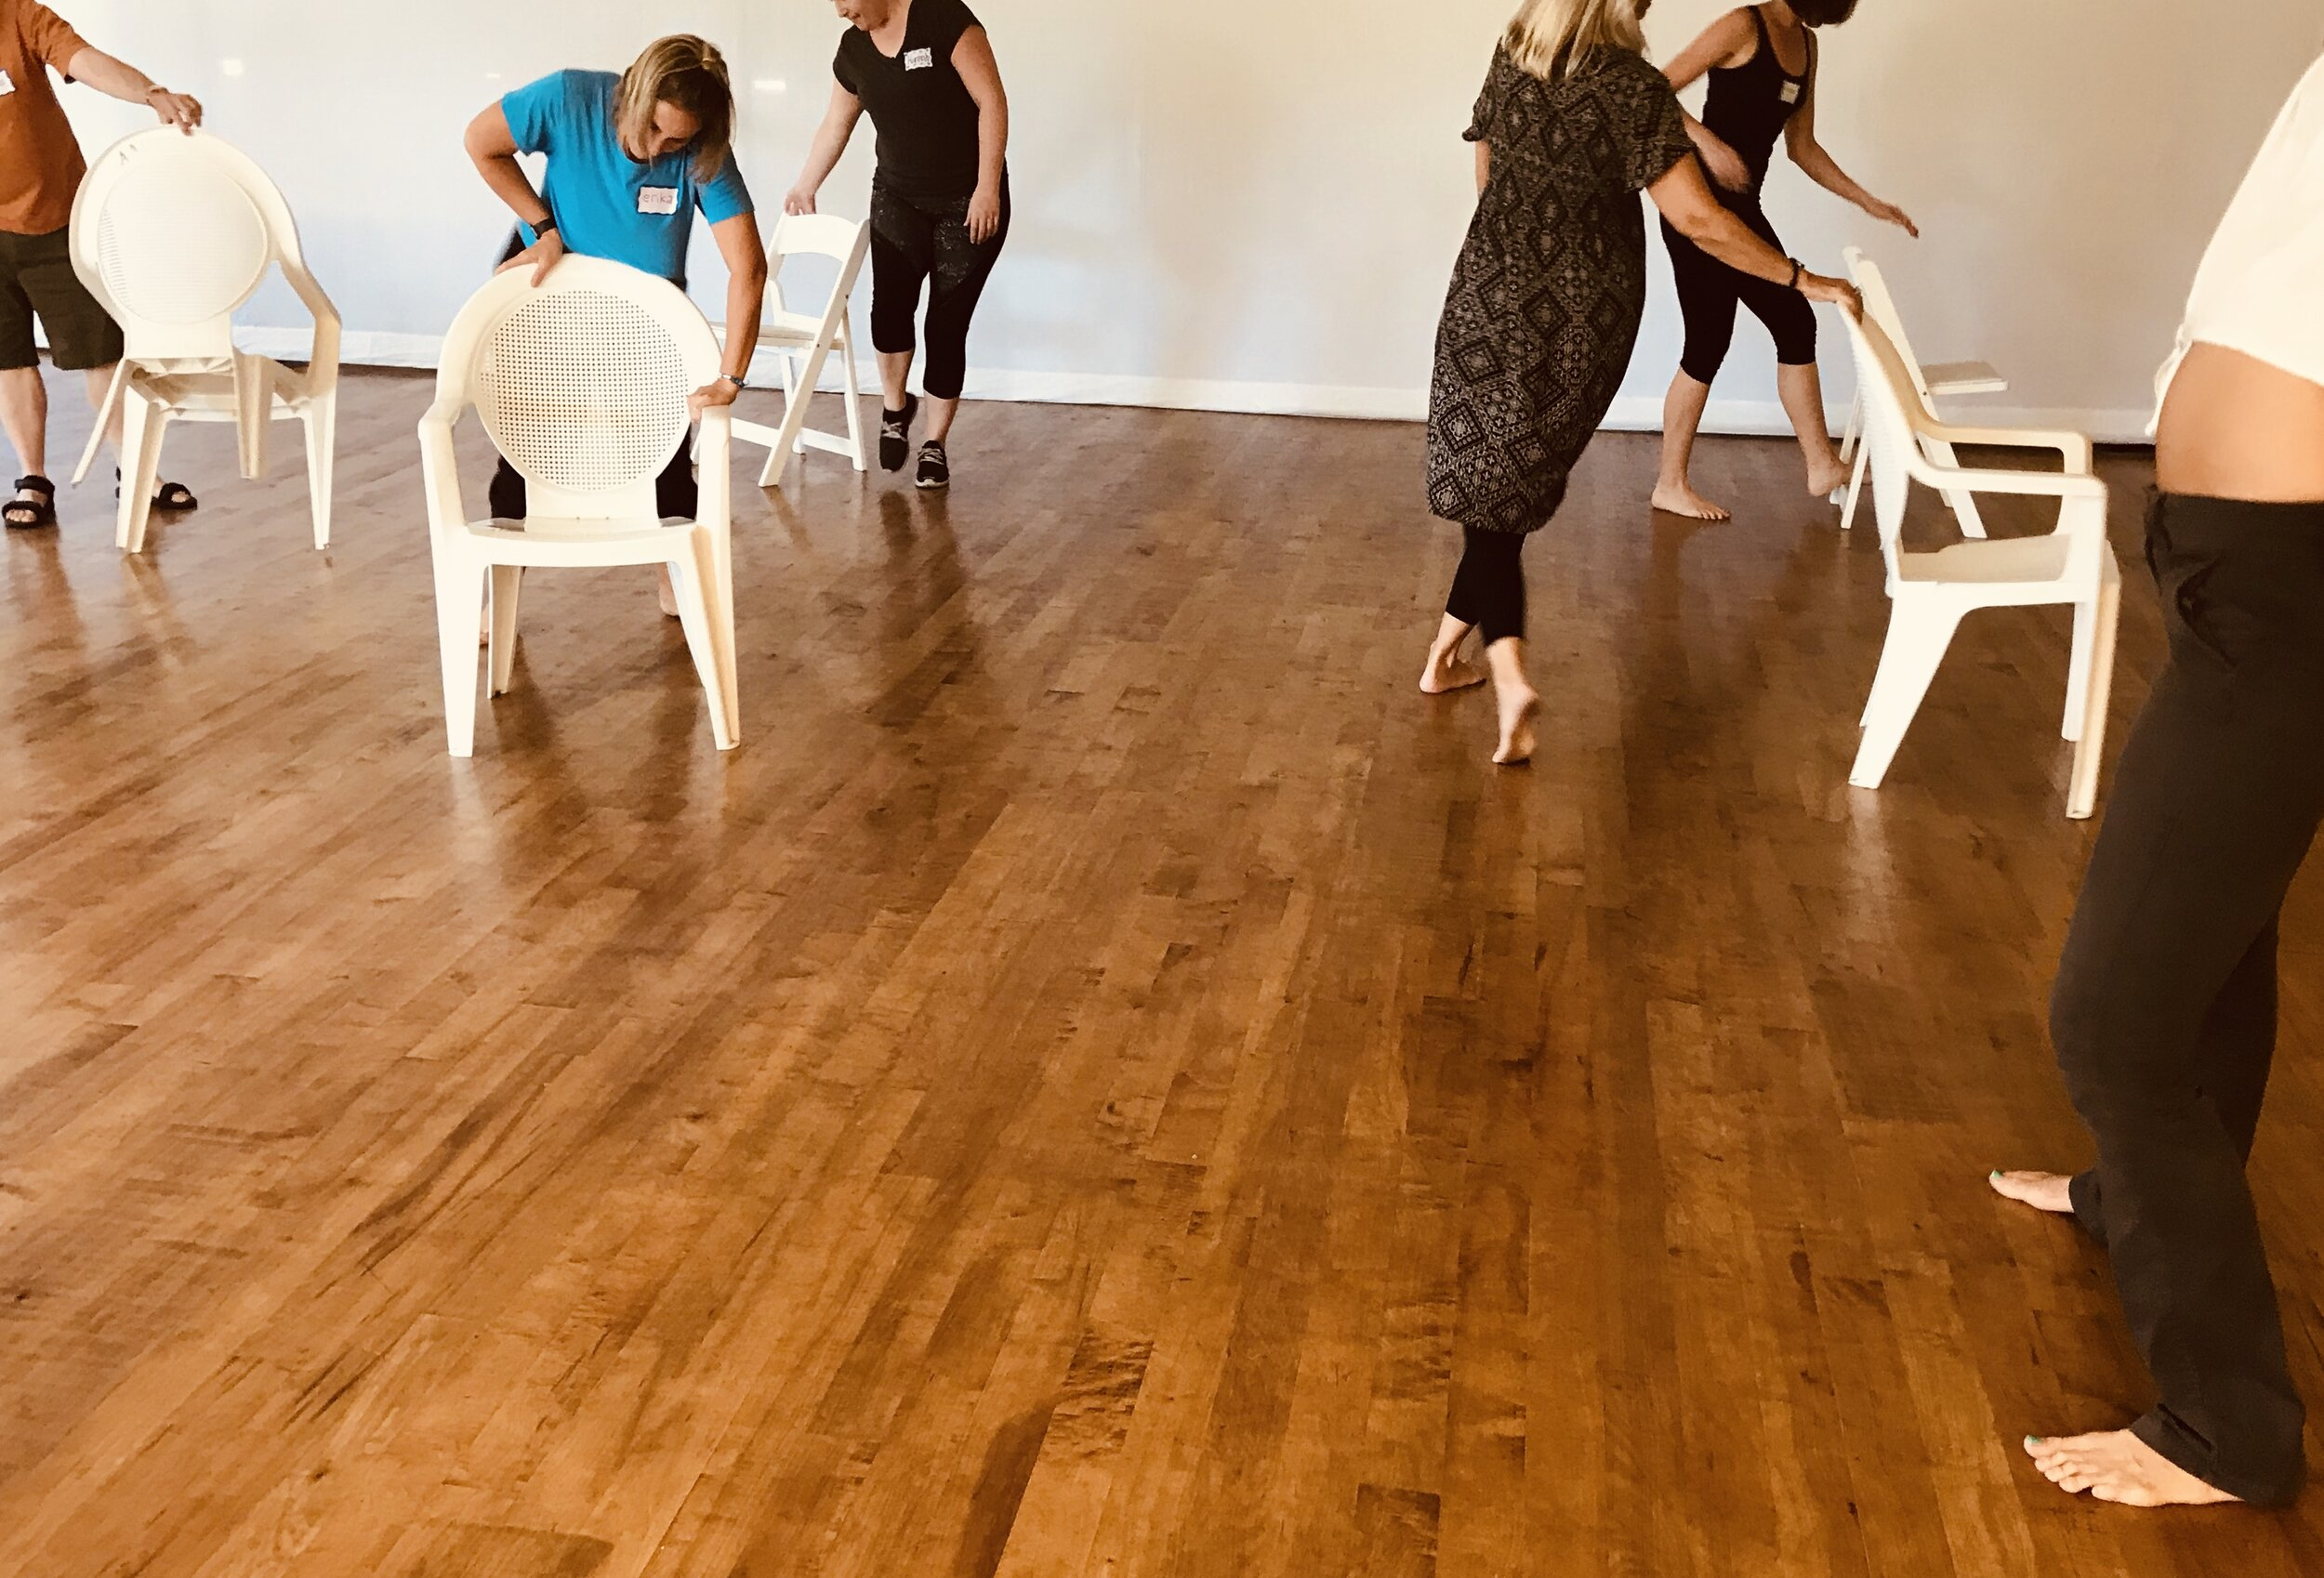 Playful Movement with Chairs